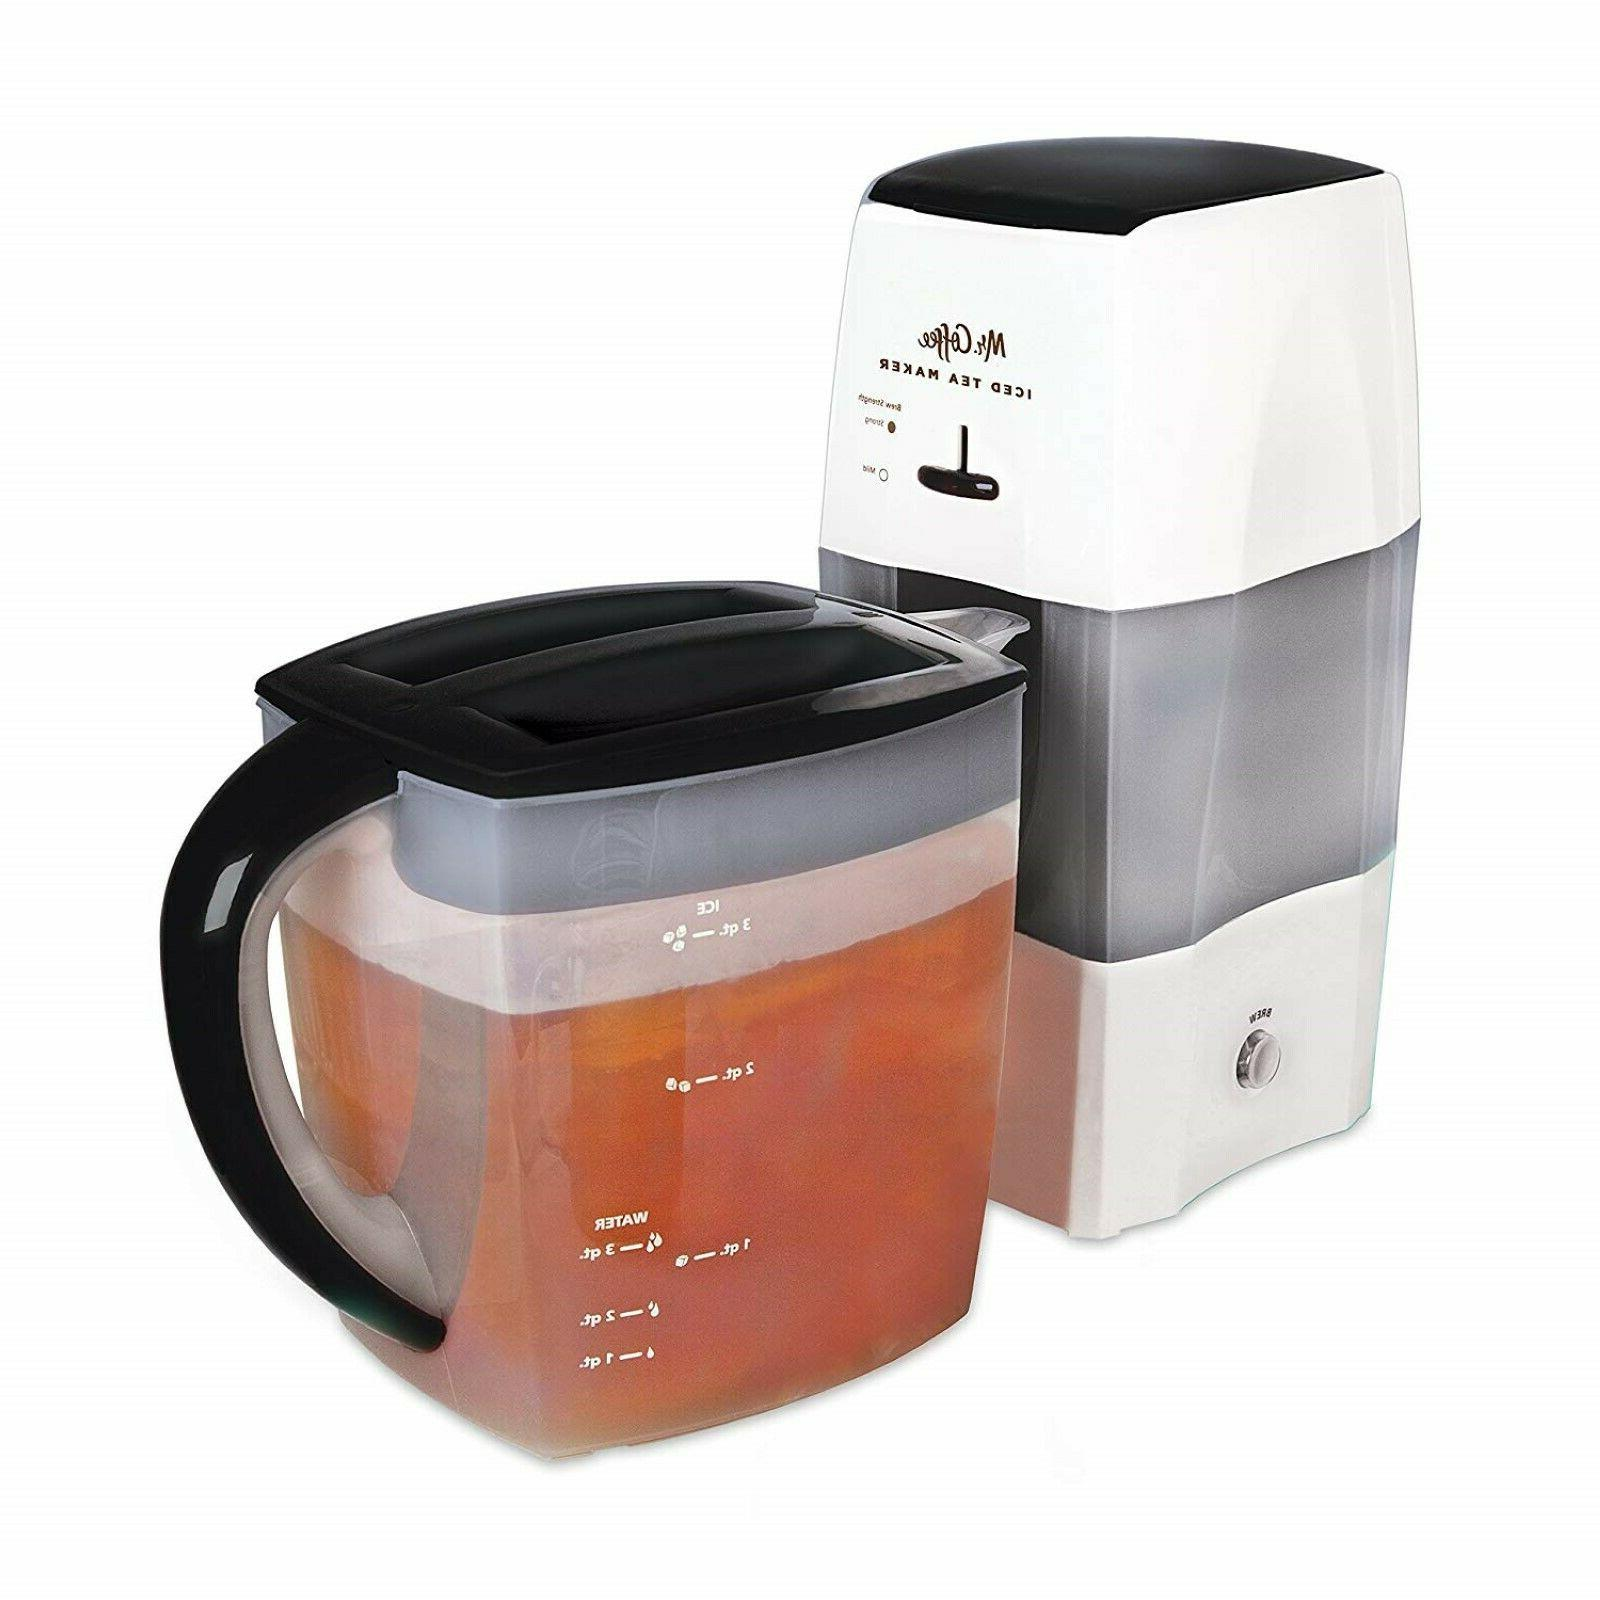 Mr. Coffee Fresh Tea Iced Tea Maker Machine 3-Quart Home Kit